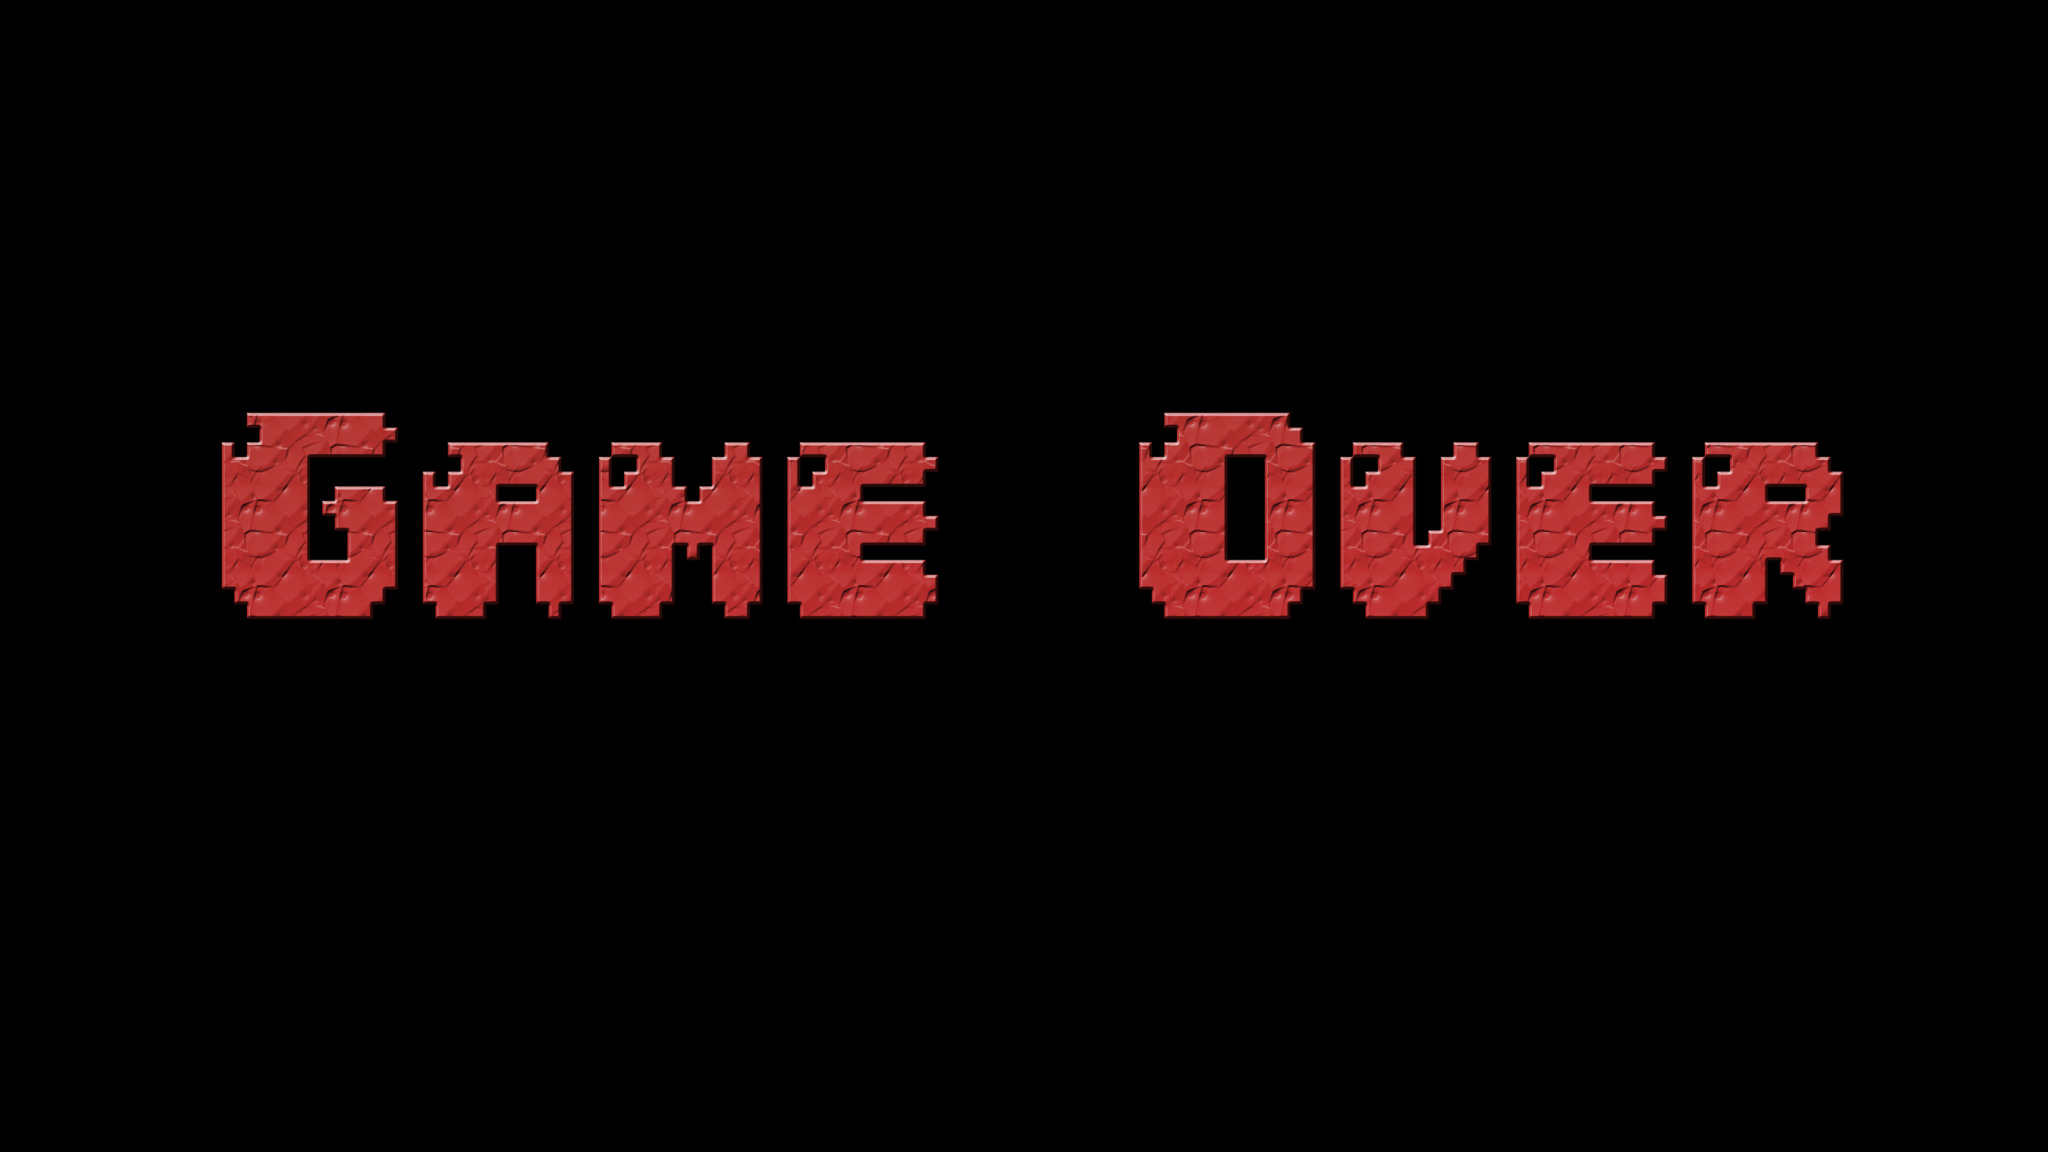 2048x1152 game over typography 2048x1152 resolution hd 4k wallpapers